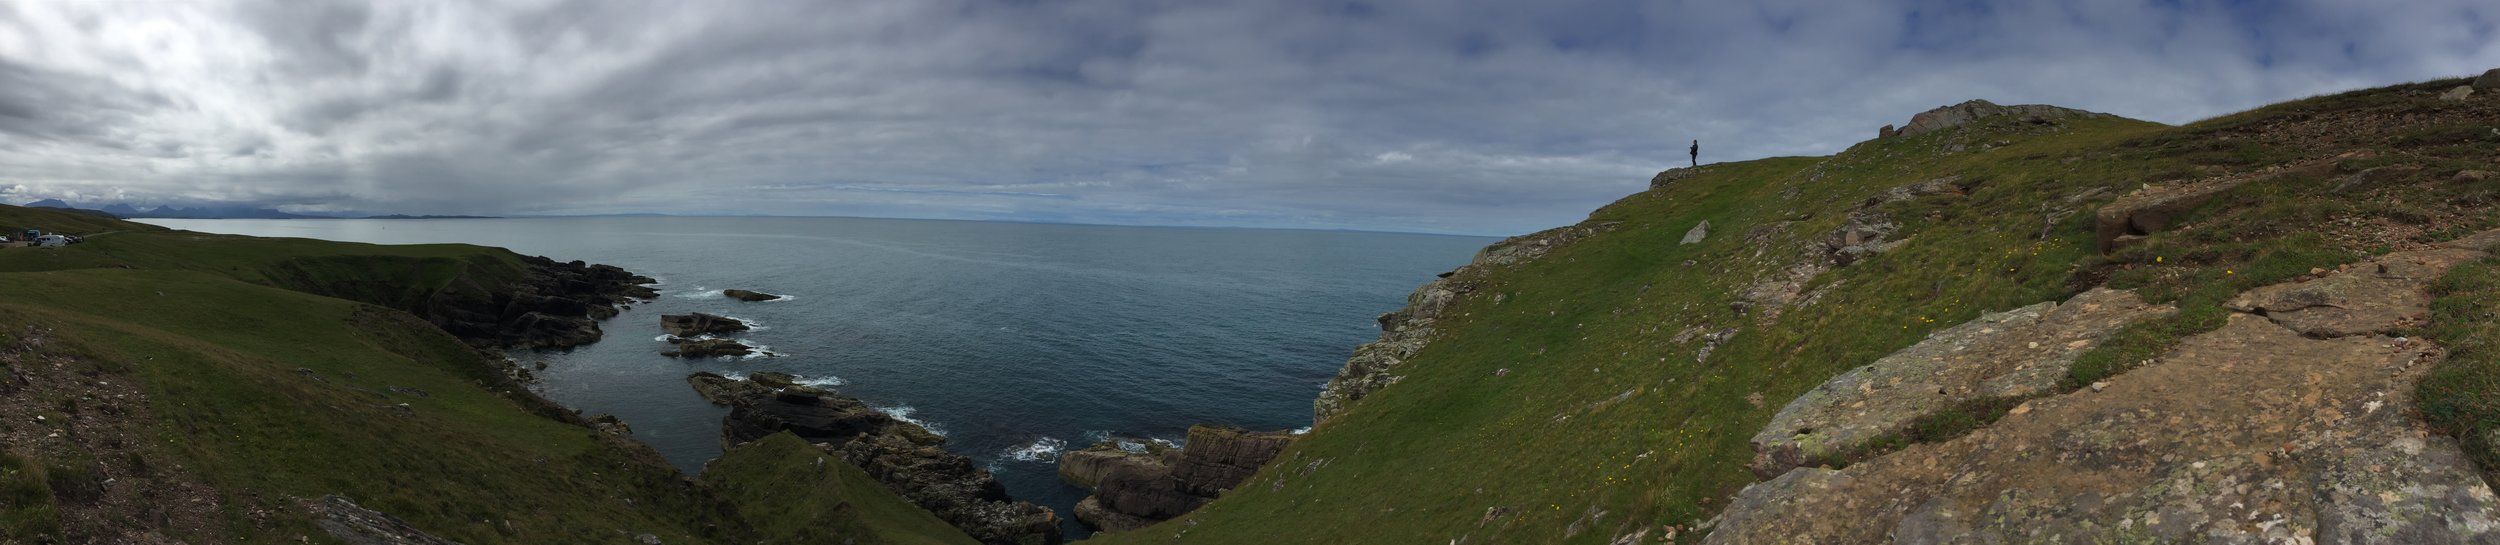 A stop at the Stoer Lighthouse